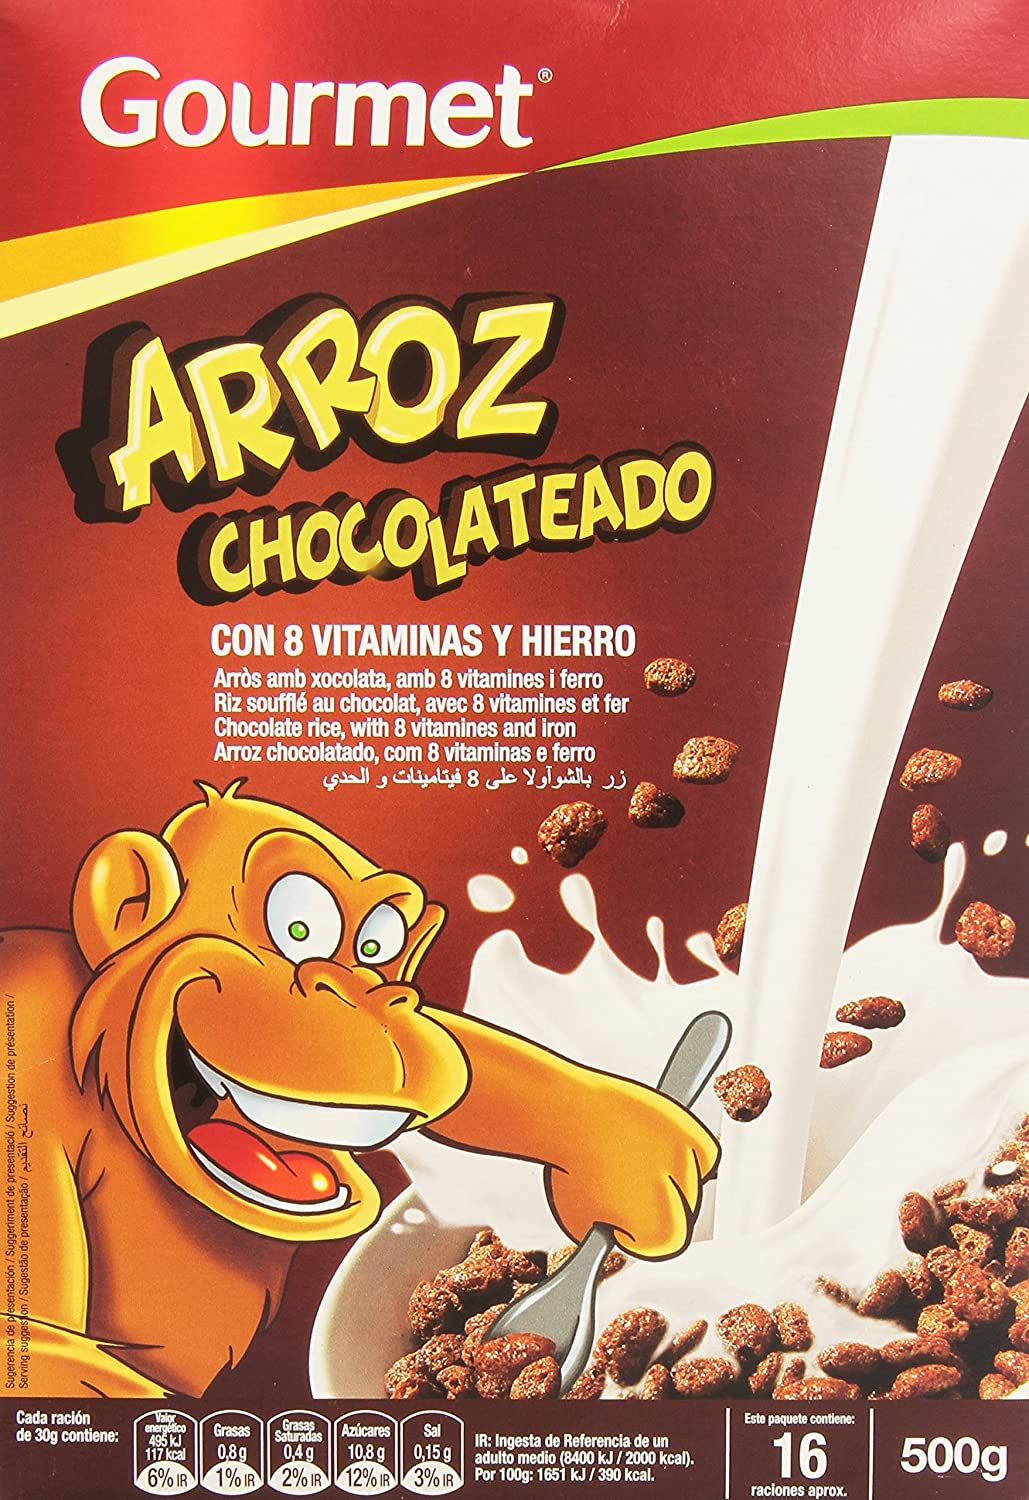 Gourmet Arroz Chocolateado, 8 Vitaminas y Hierro - 500 g: Amazon ...